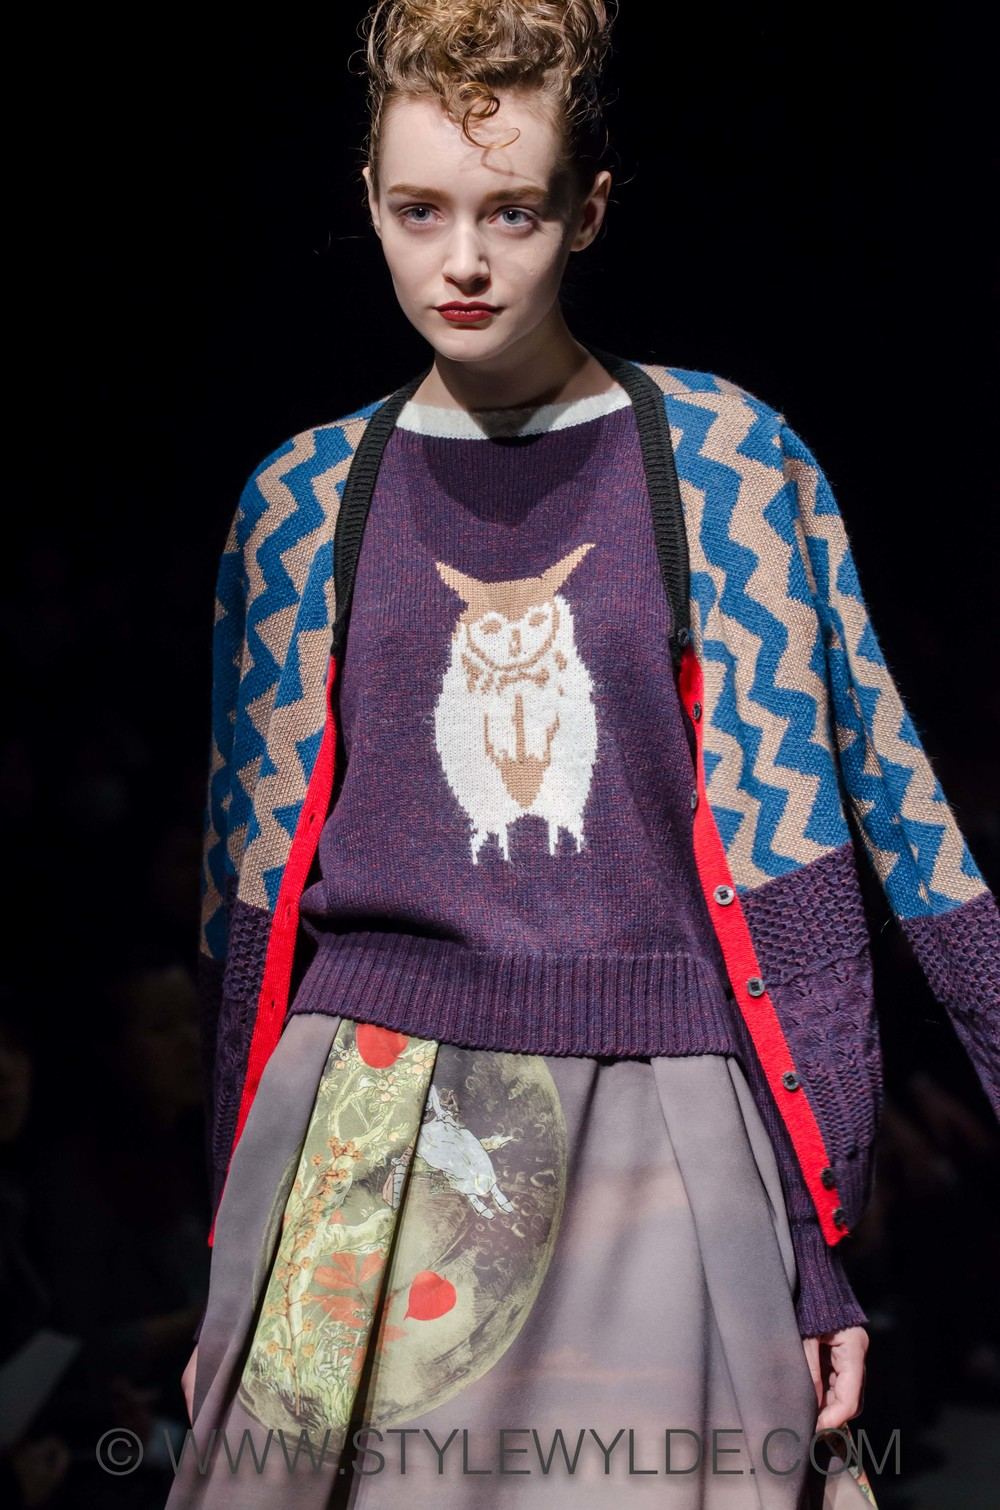 StyleWylde_INProcess_AW14_edited (1 of 1)-3.jpg